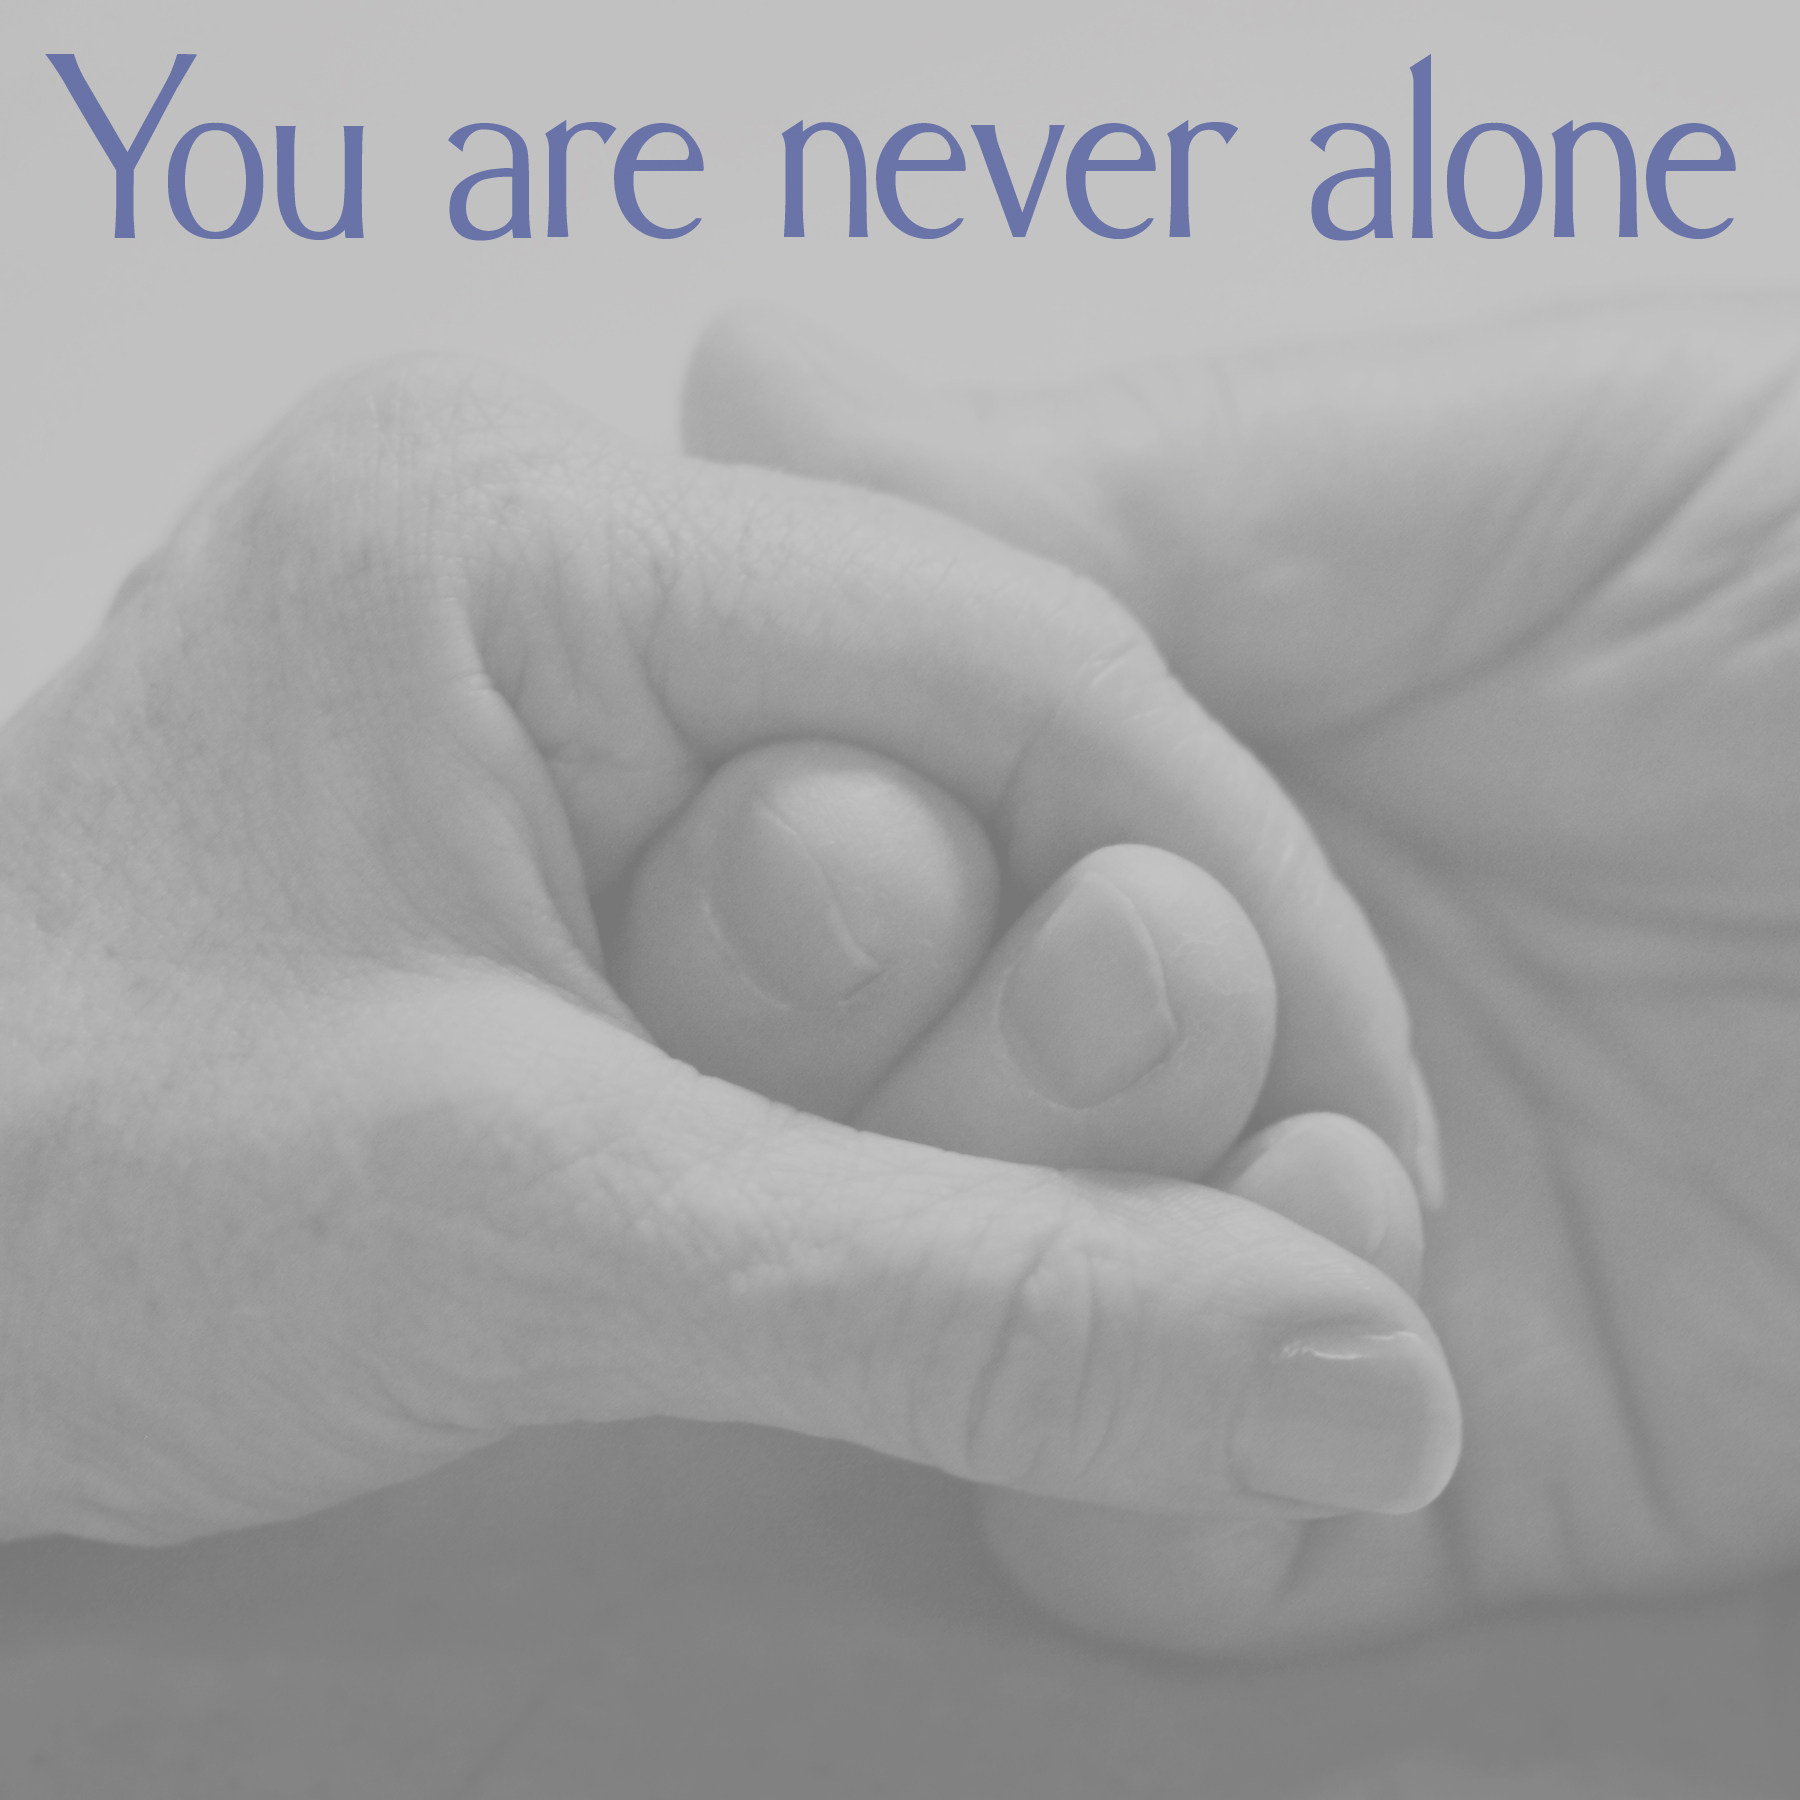 you_are_never_alone_central_pain_syndrome_foundation_cpsf_square.jpg